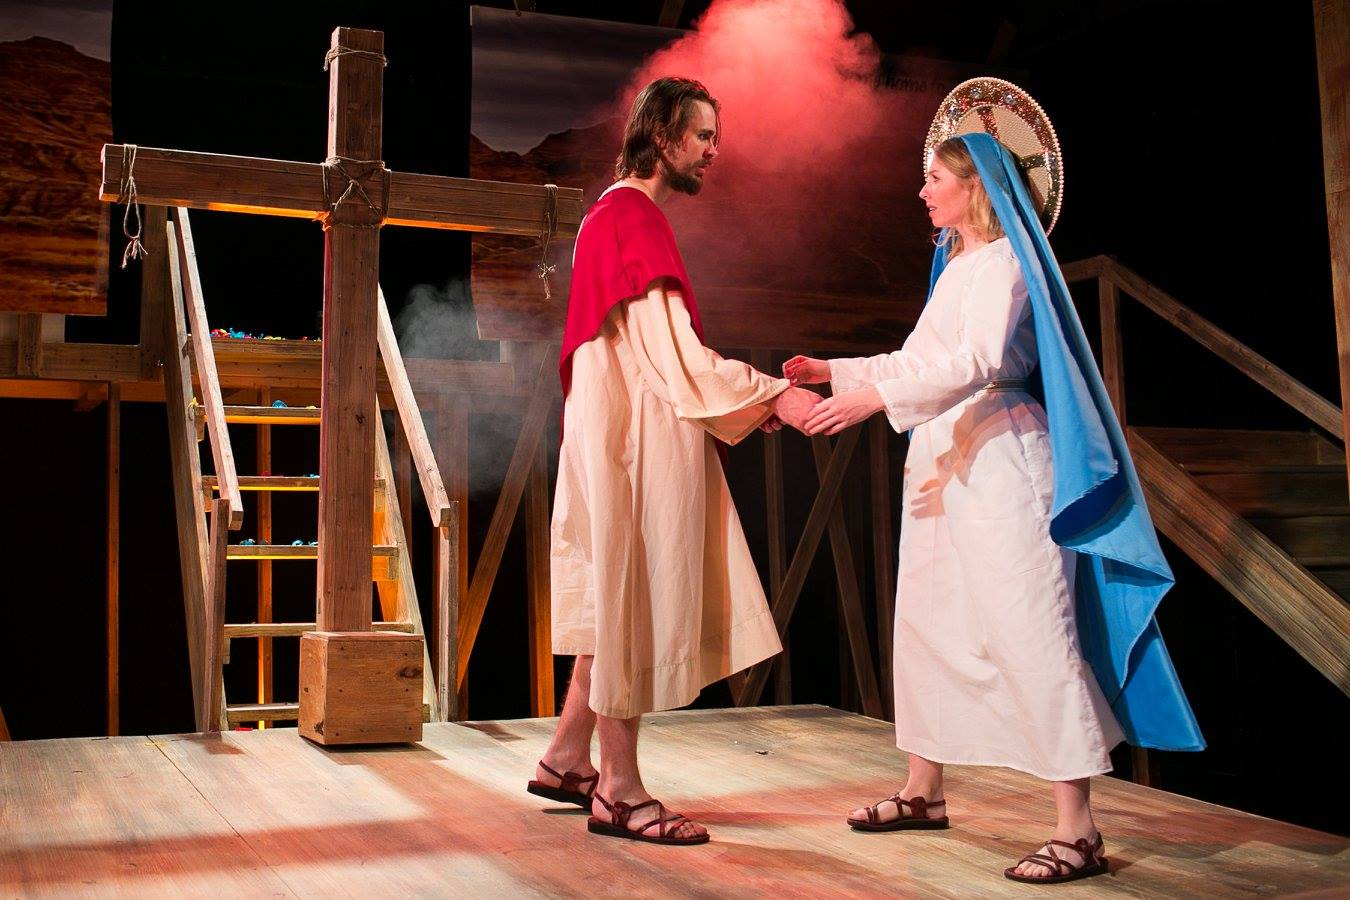 J (Jesus) and Mary 1 (Virgin Mary) from Act 3 of Sarah Ruhl's Passion Play costume design by Katharine Tarkulich